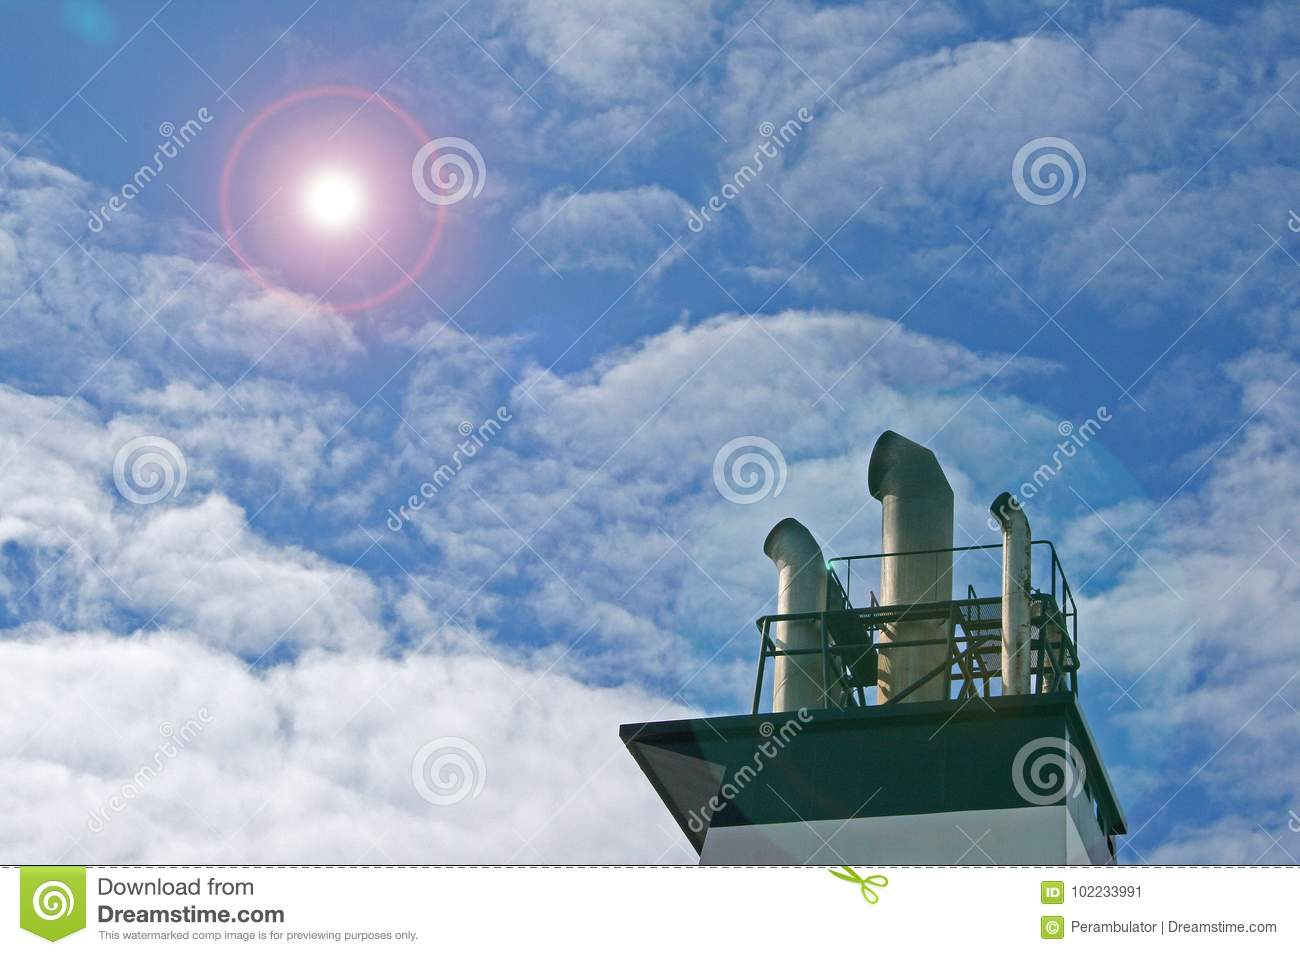 SMOKE STACKS OF SHIP WITH ADDED LENS FLARE